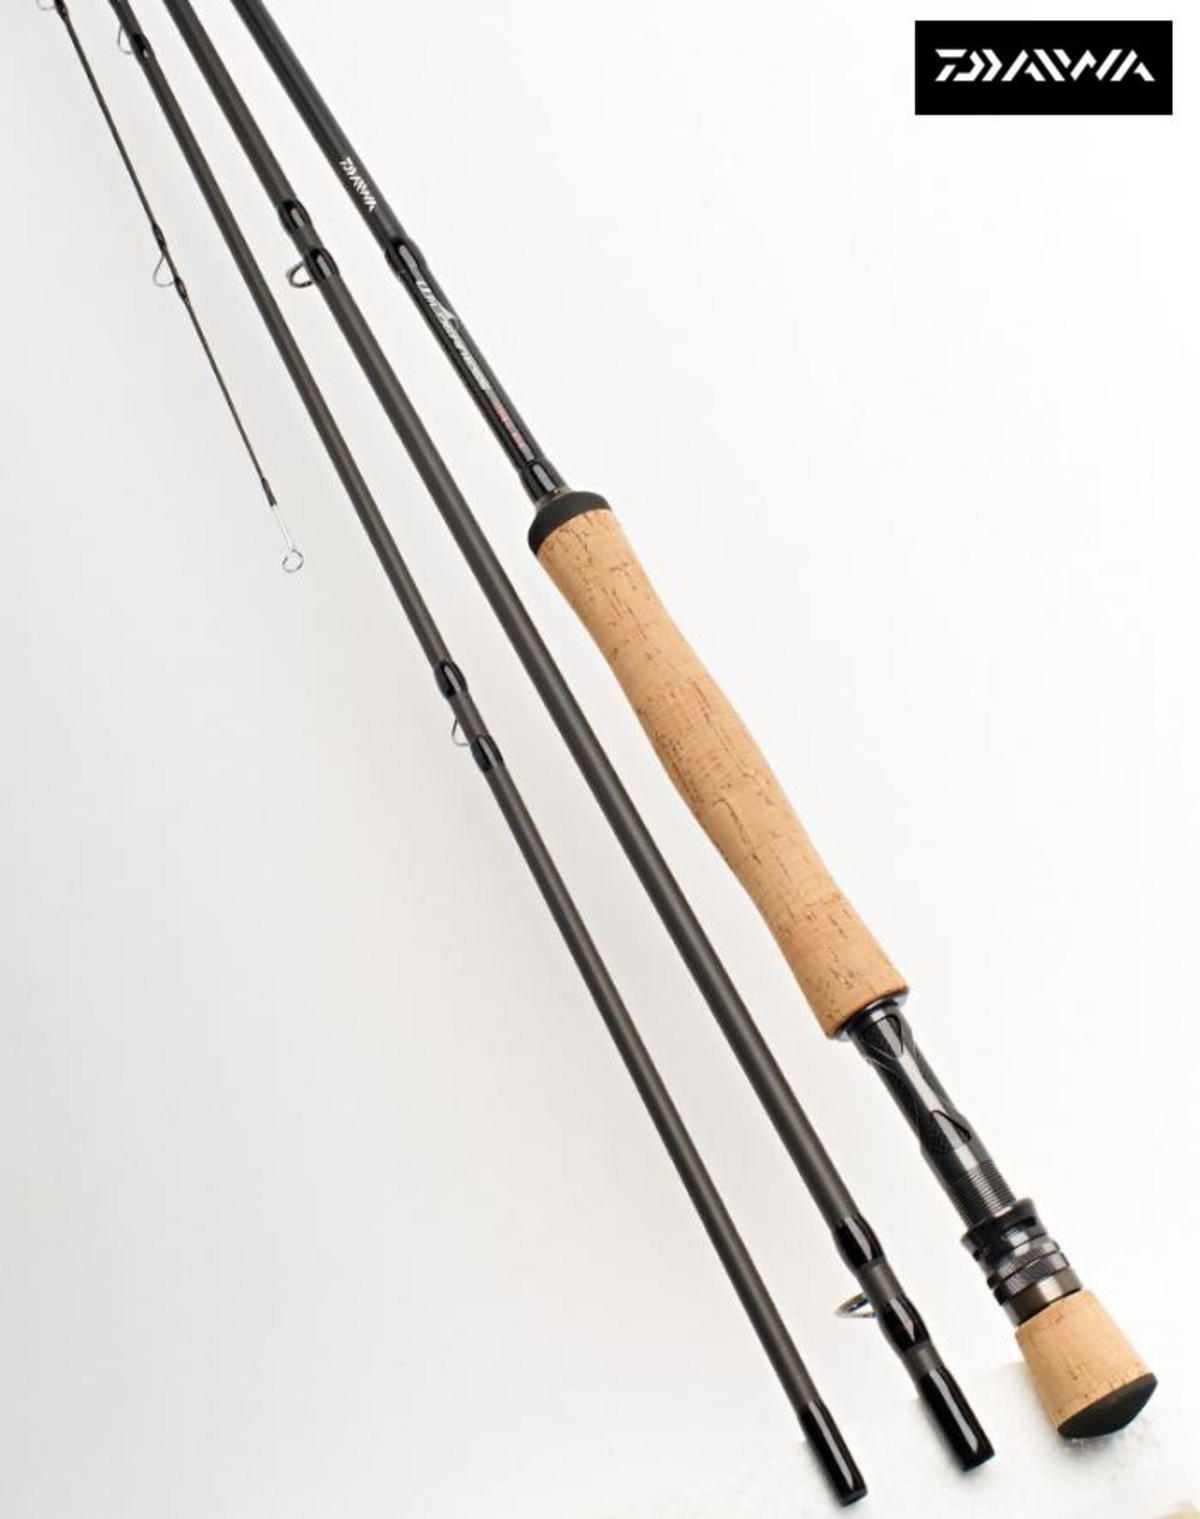 New Daiwa Wilderness Trout Fly Fishing Rods - All Models Available